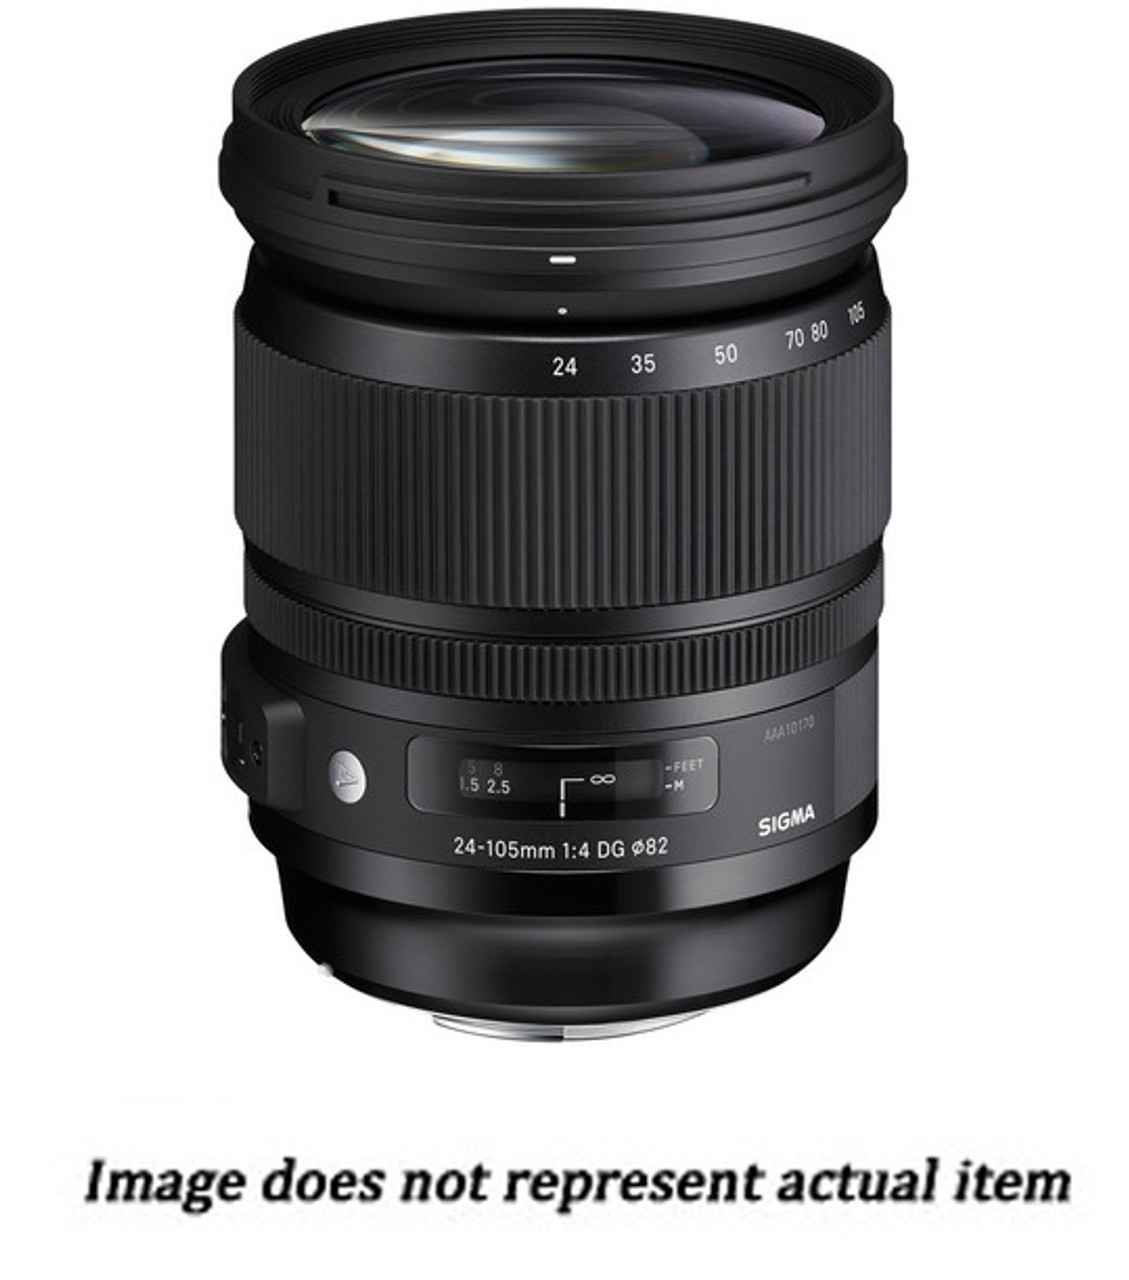 Sigma 24-105mm F/4 DG OS HSM Lens for Nikon (USED) - S/N 51764317